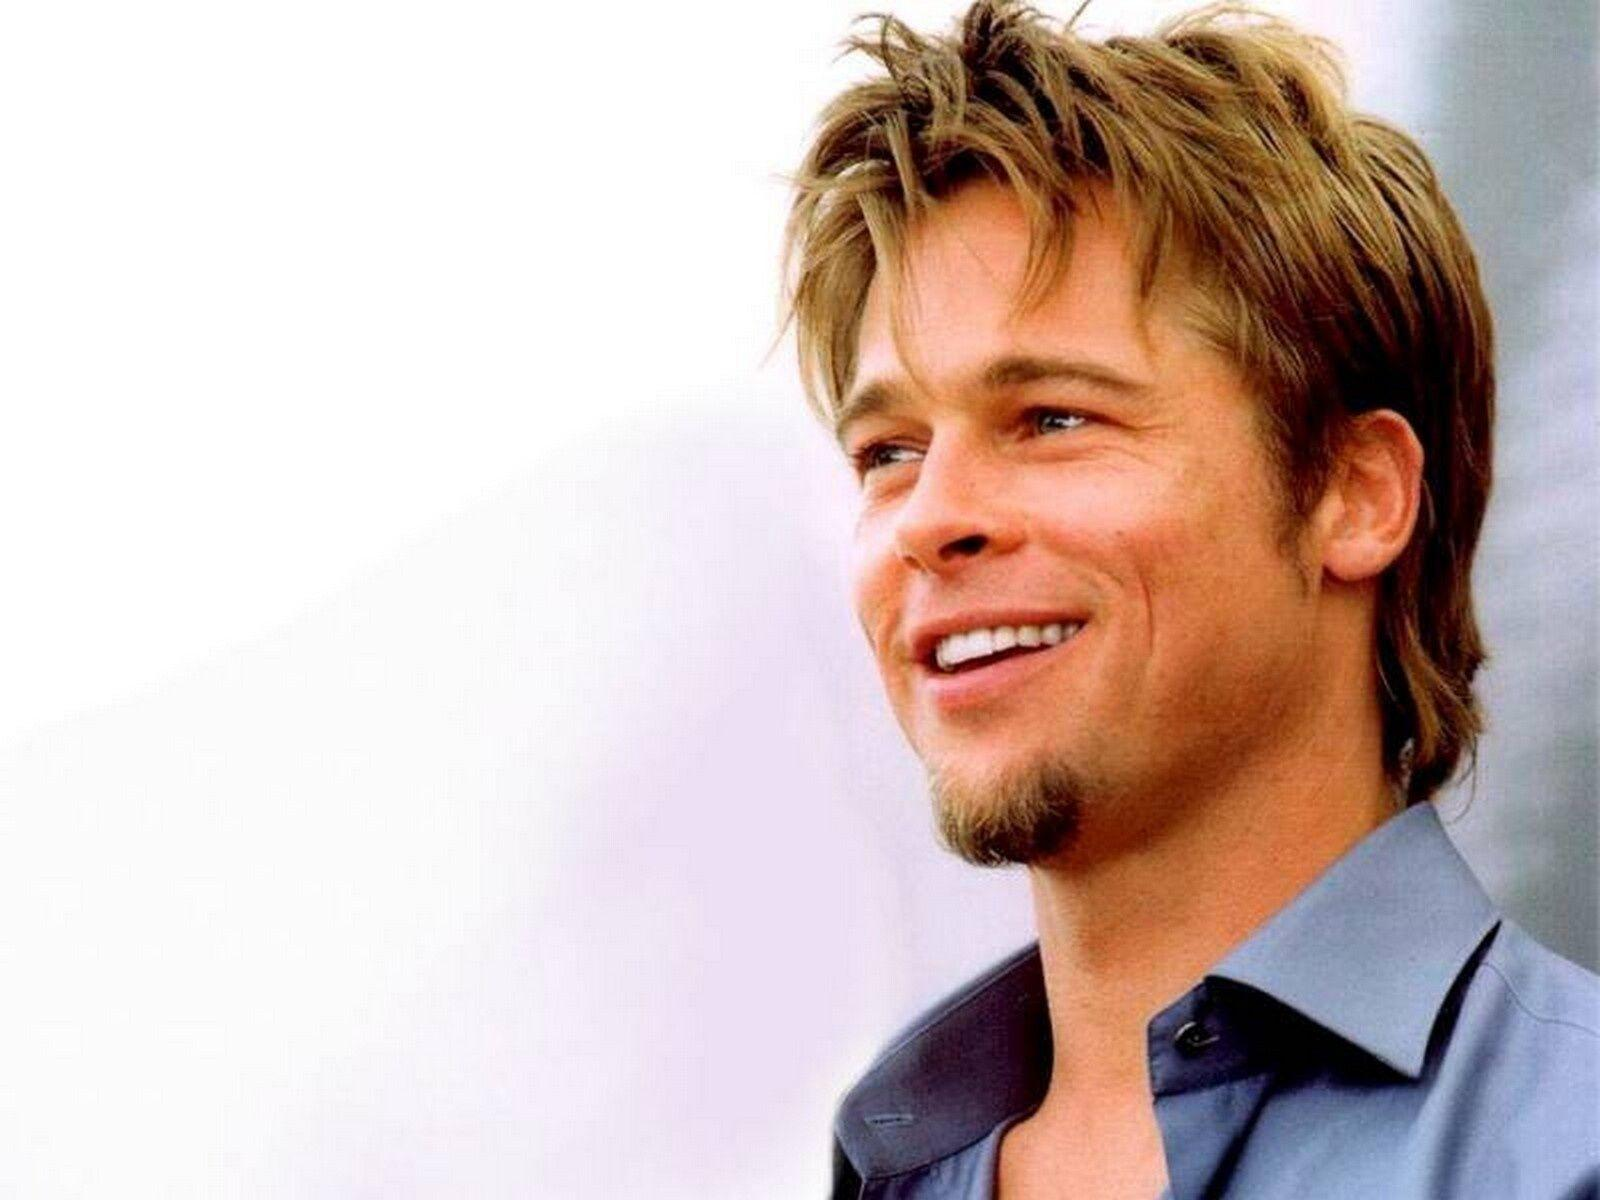 Bradd - Brad Pitt Wallpaper (34335038) - Fanpop